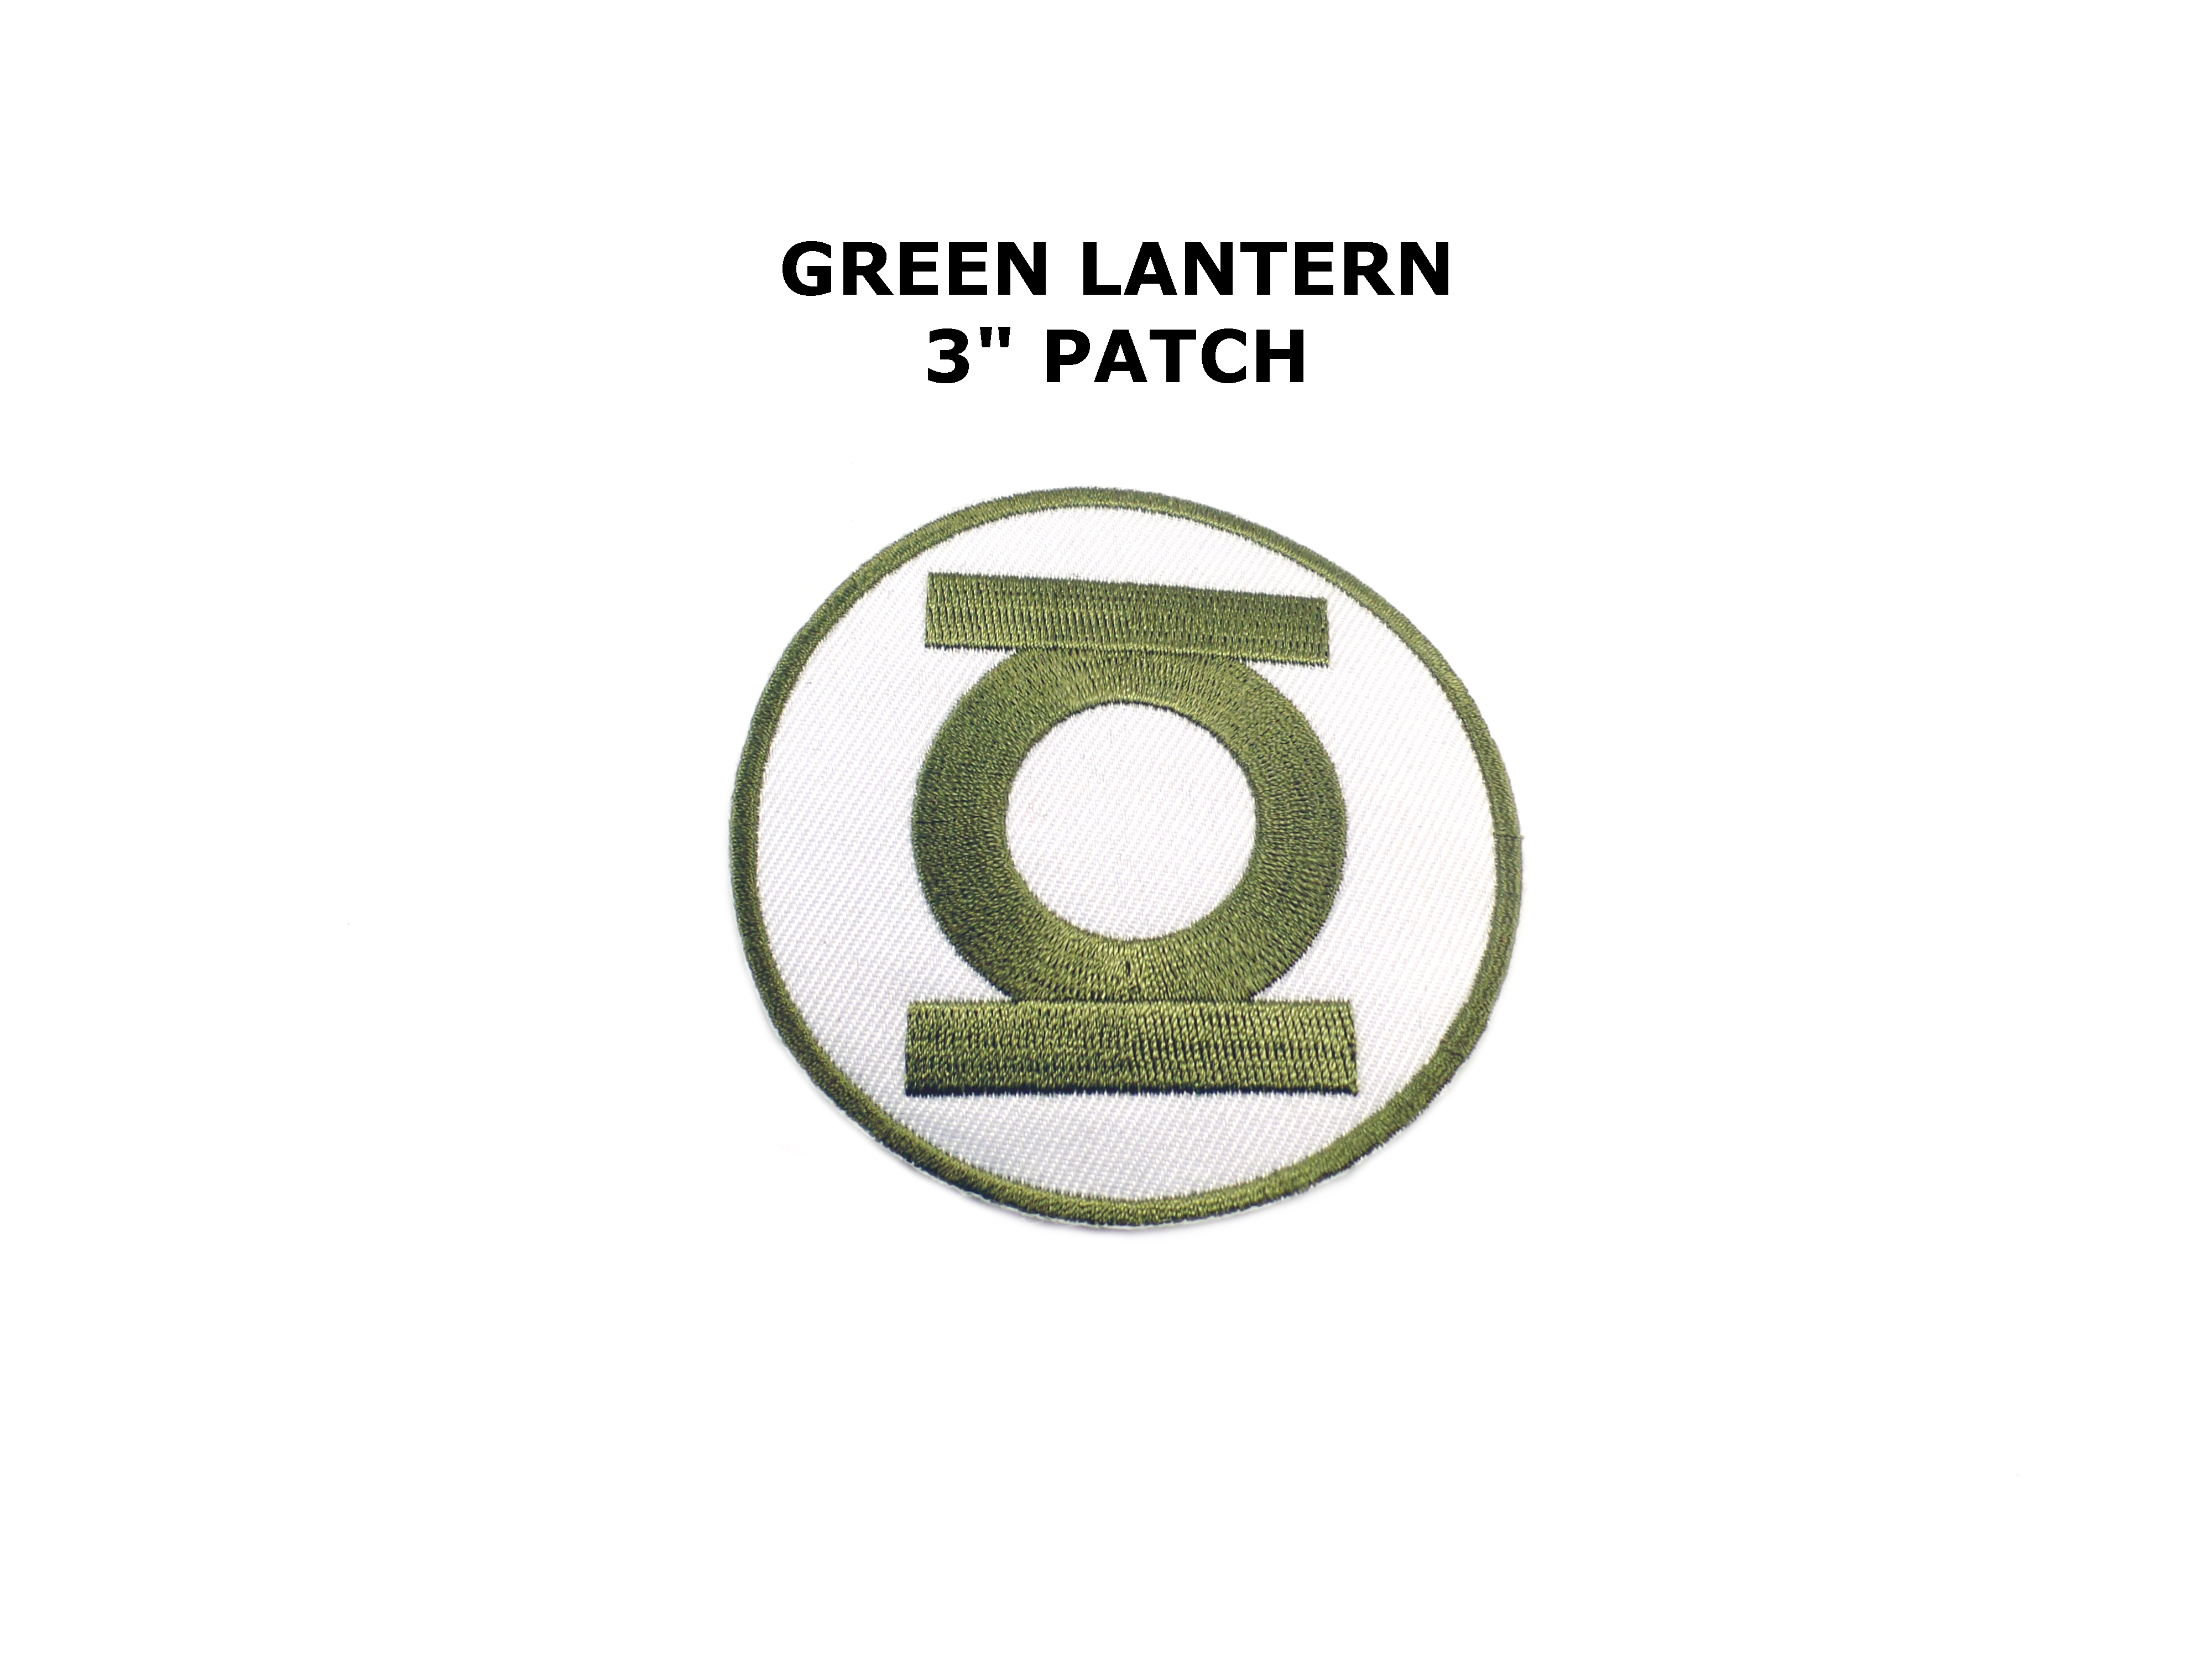 Green lantern Superhero Movie Embroidered Iron-on Patch Backpack T-Shirt Badge